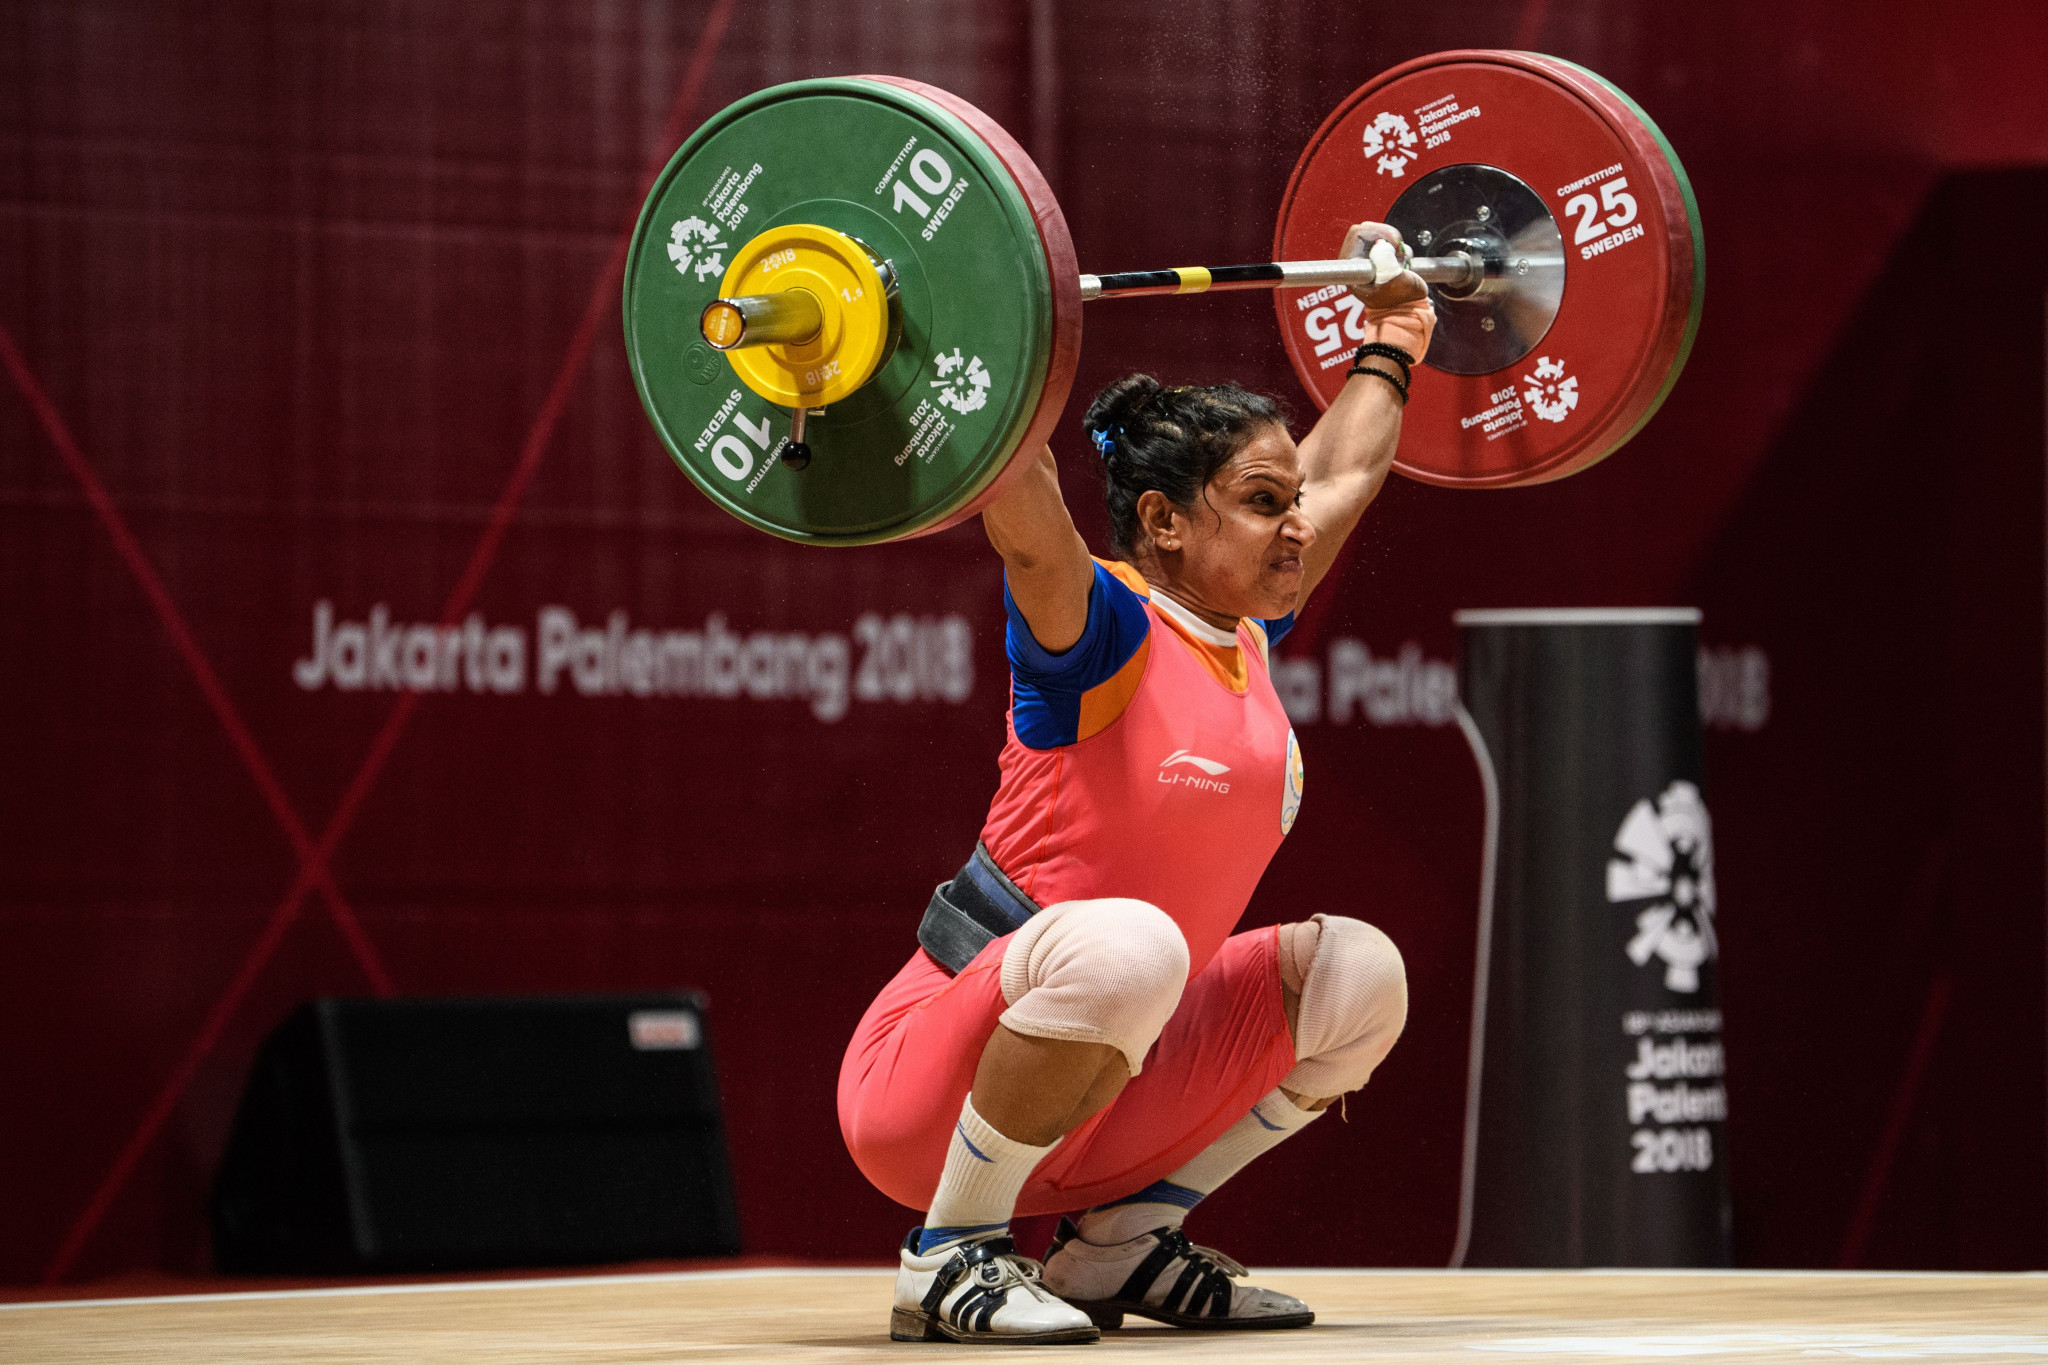 Indian Weightlifting Federation to stop using Chinese equipment amid conflict